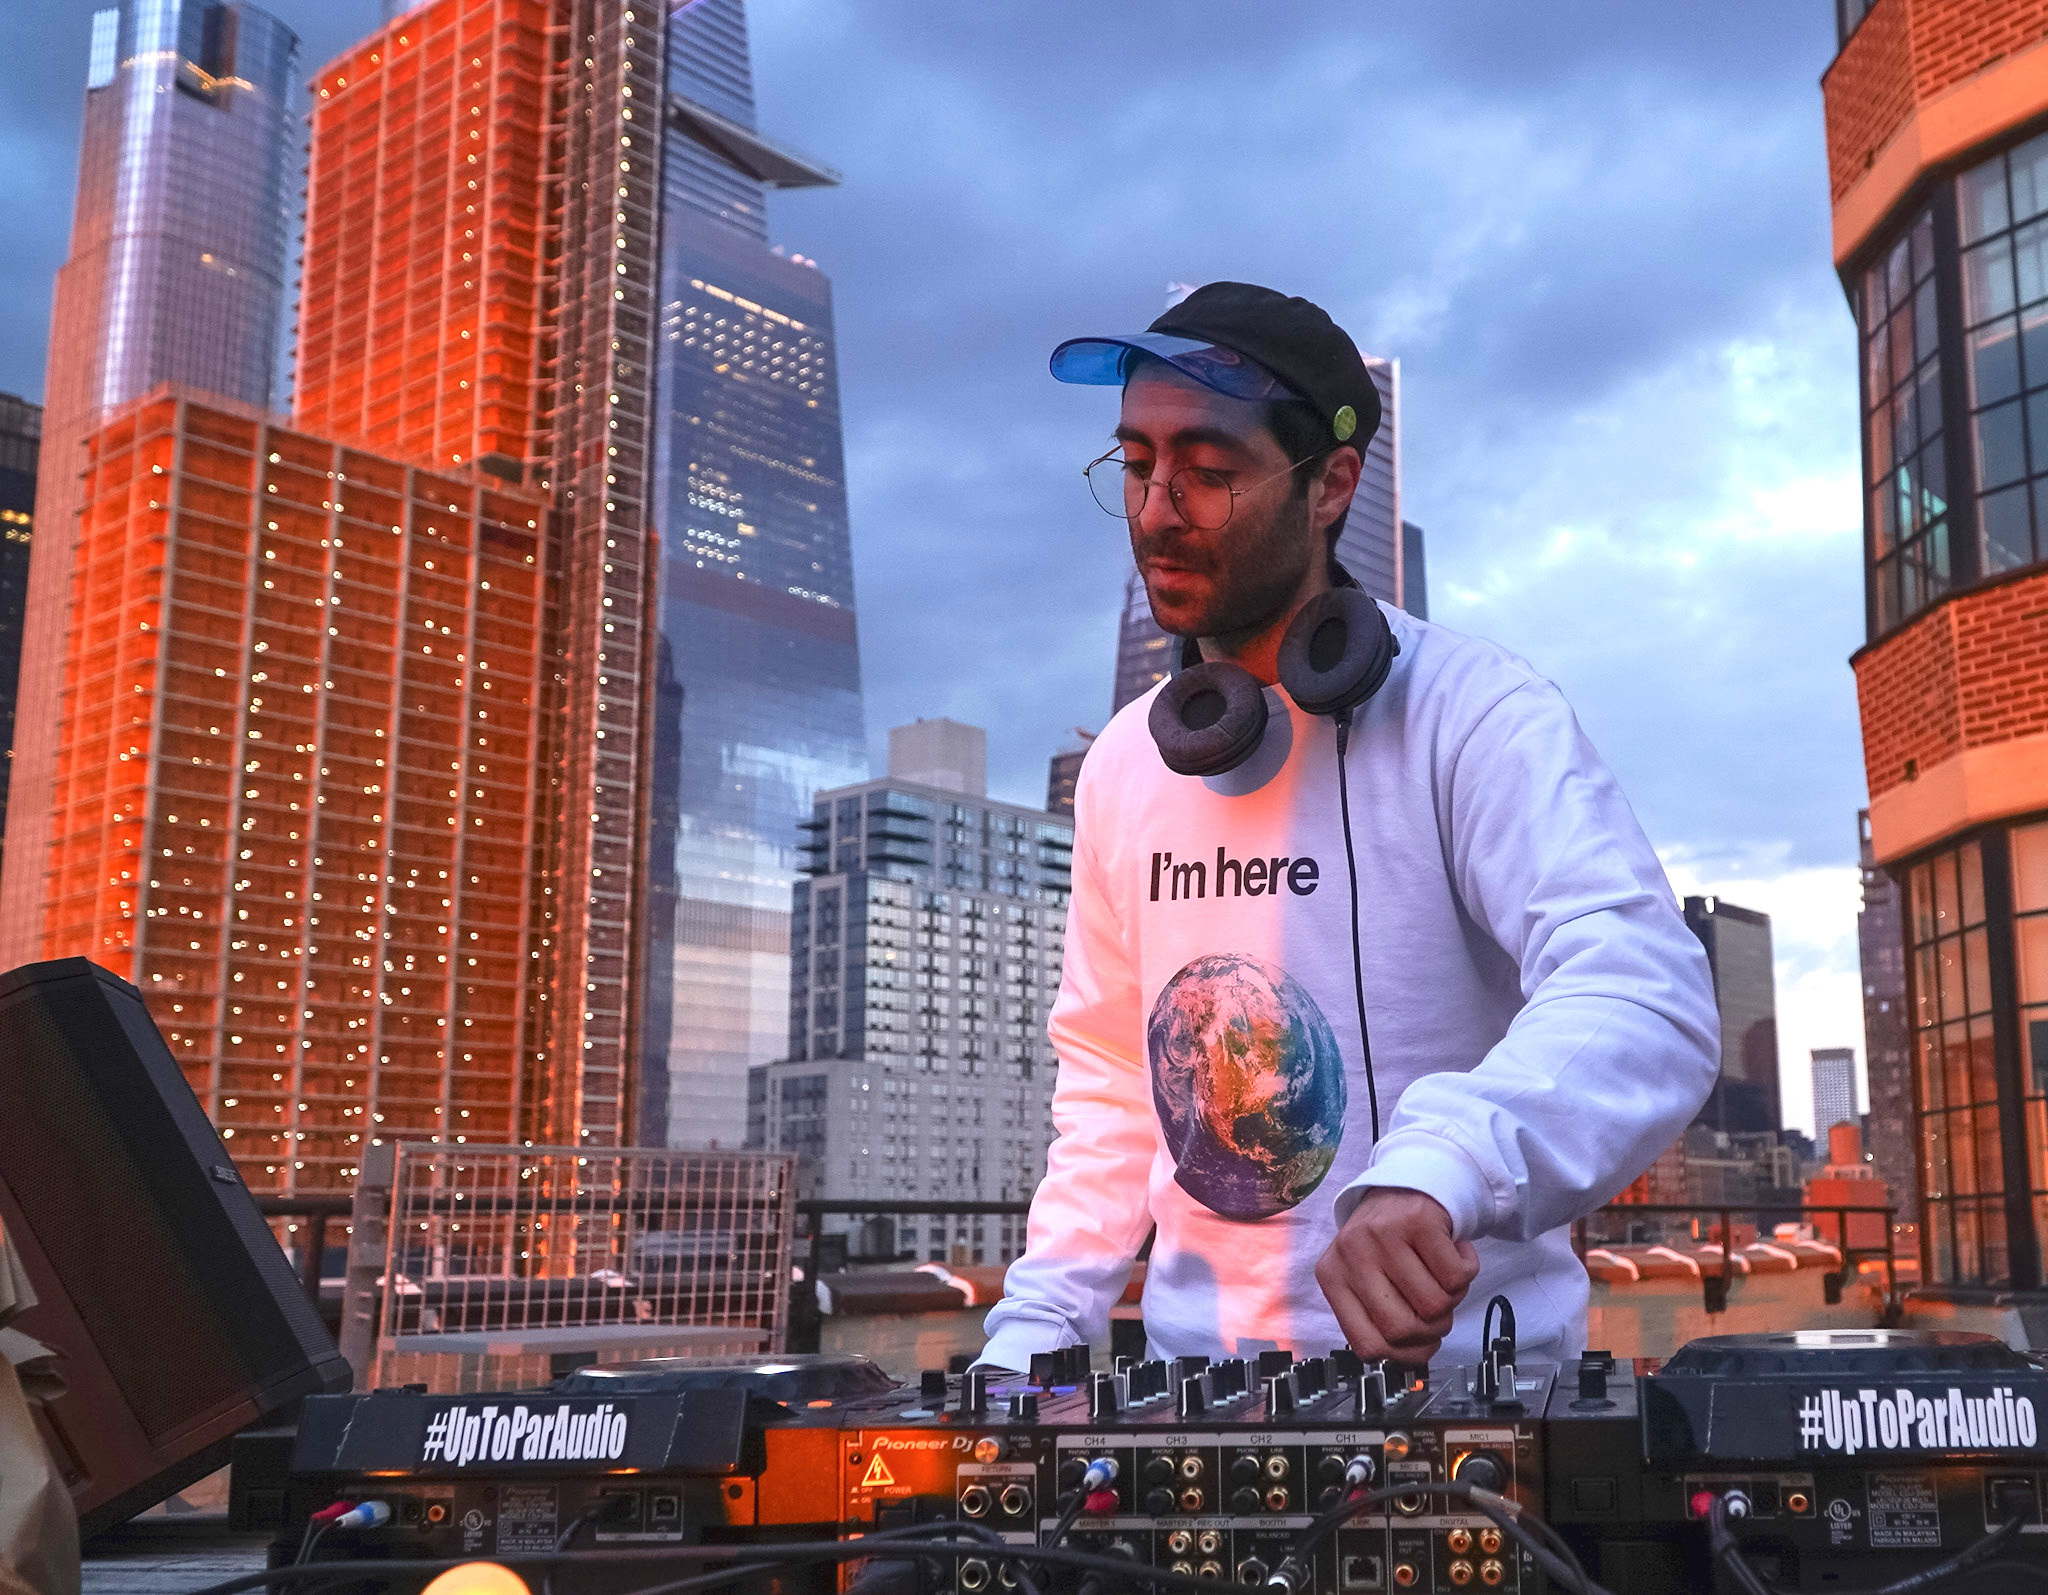 Amer Djing against the NYC skyline at golden hour.